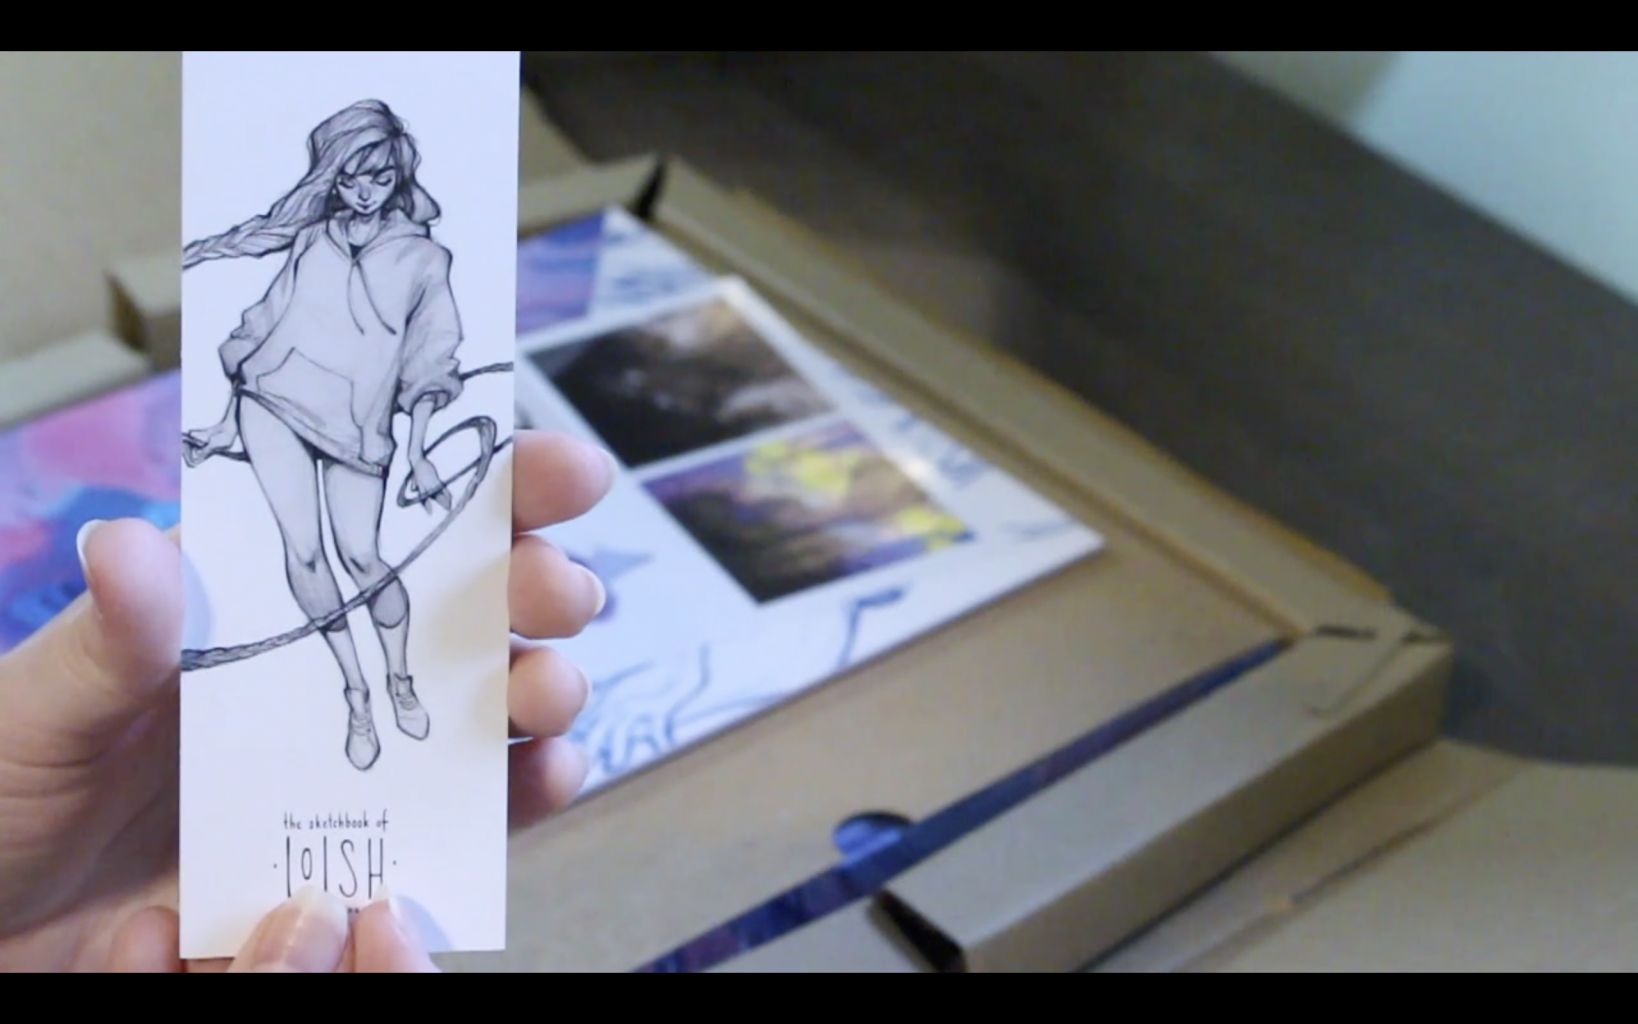 The Sketchbook Of Loish: Art In Progress (+Video Unboxing And Flip Through) Freebies! Bookmark